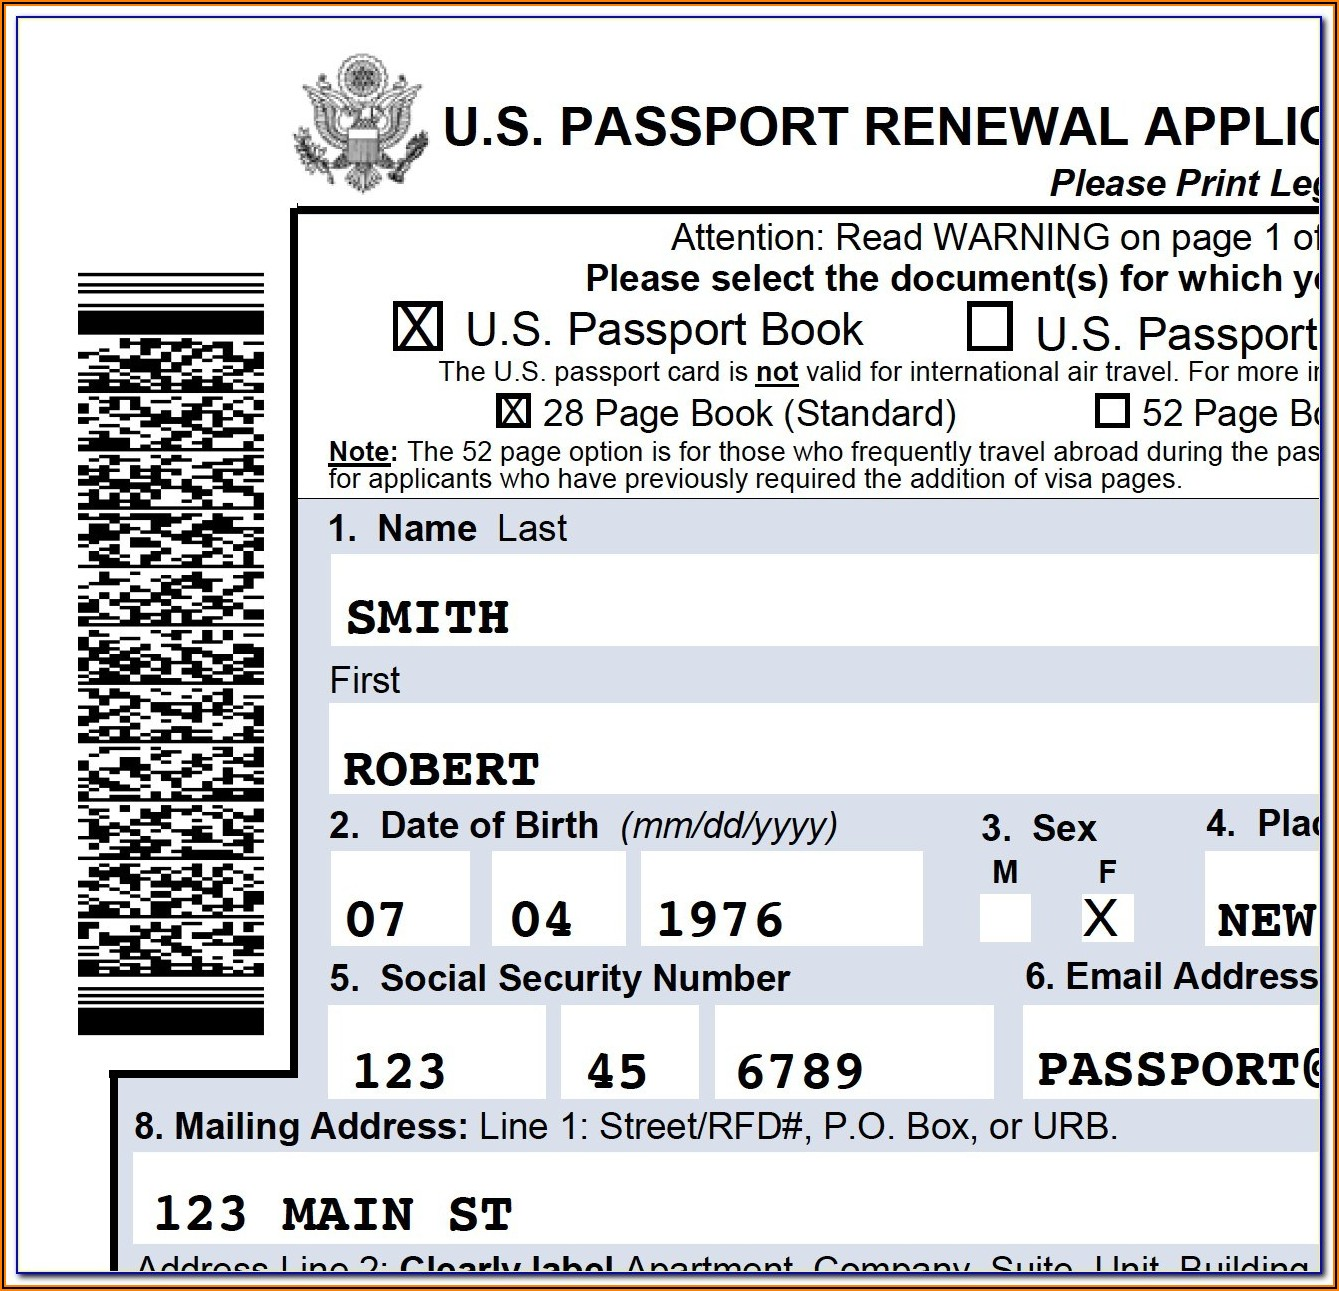 Application Form For Passport Renewal Philippines